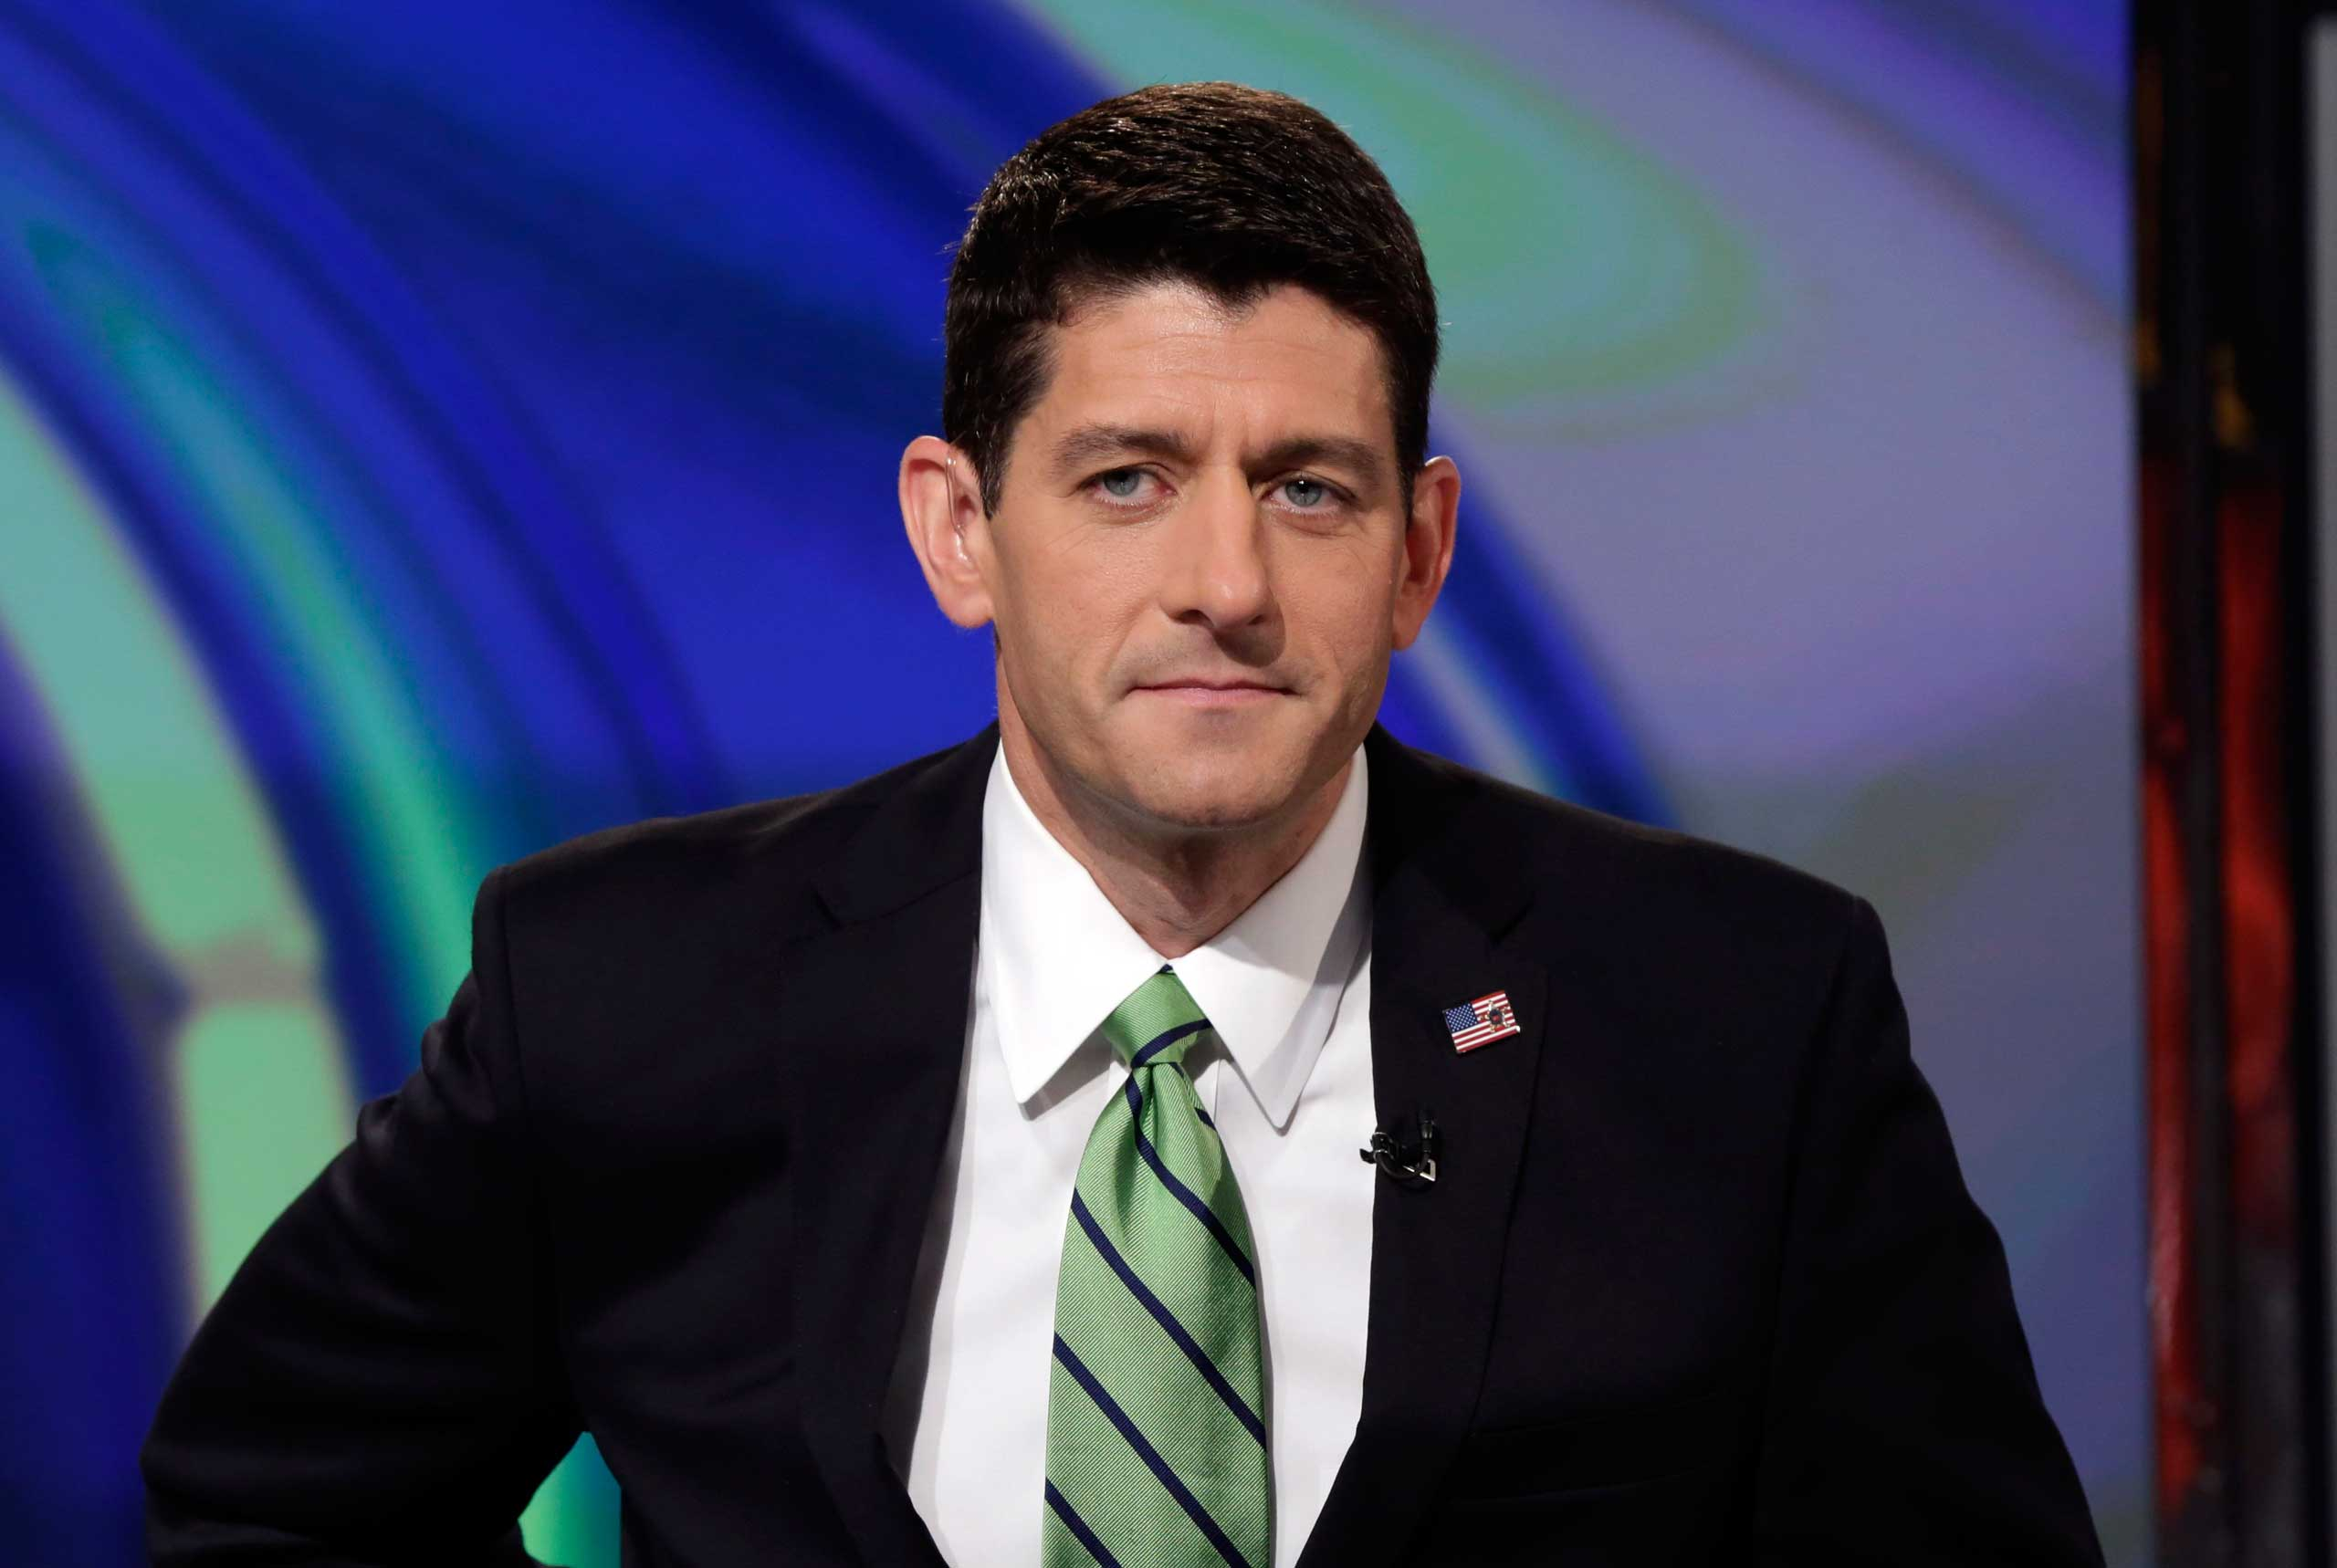 Rep. Paul Ryan, R-Wisc., is interviewed by Maria Bartiromo during her  Opening Bell With Maria Bartiromo  program on the Fox Business Network, in New York City on Sept. 29, 2014.